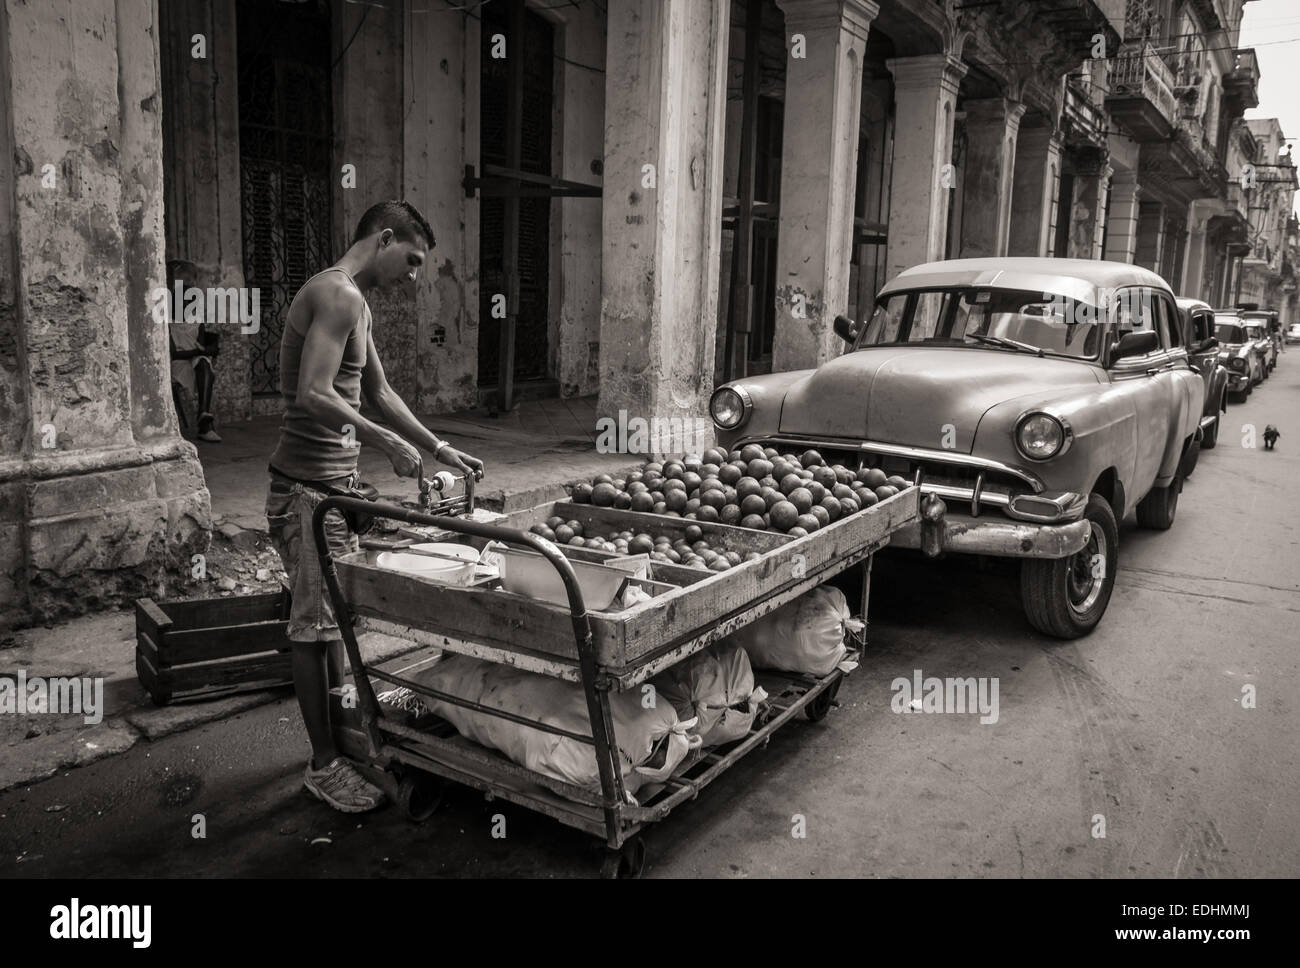 Cuba Street Archive.  Typical street scene in old Havana. - Stock Image